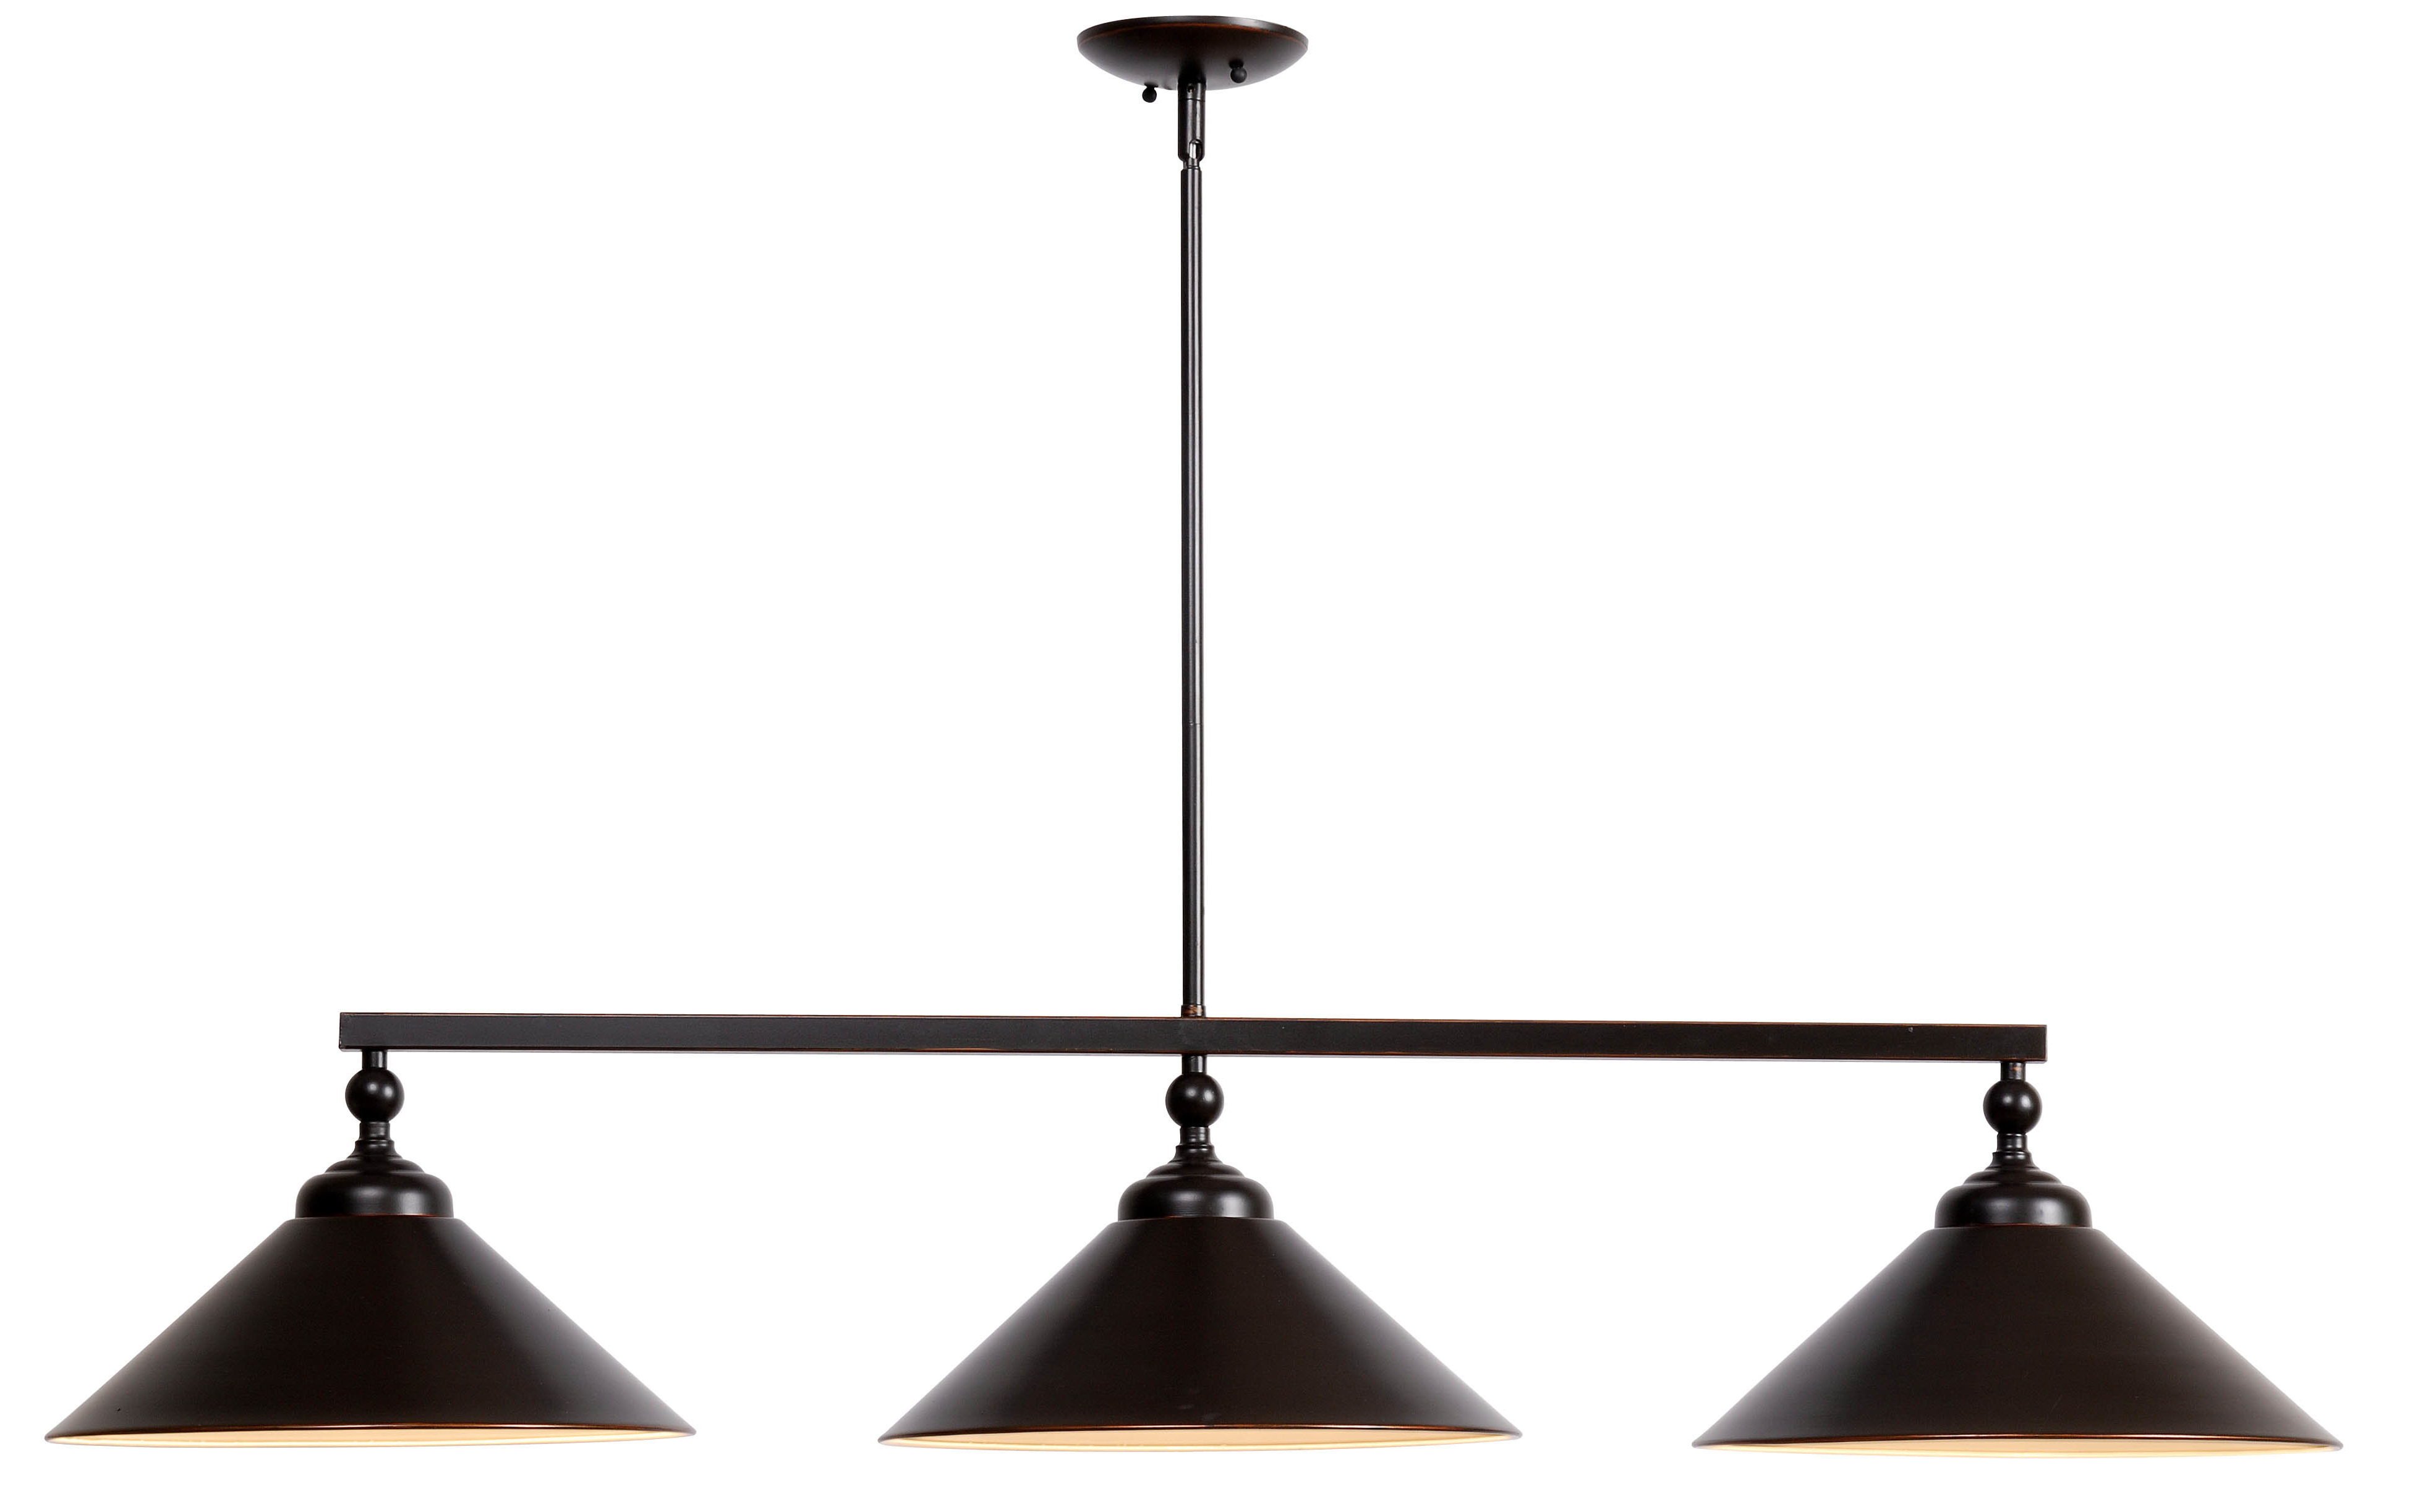 Debra 3 Light Kitchen Island Cone Pendant Intended For Recent Fredela 3 Light Kitchen Island Pendants (View 7 of 20)